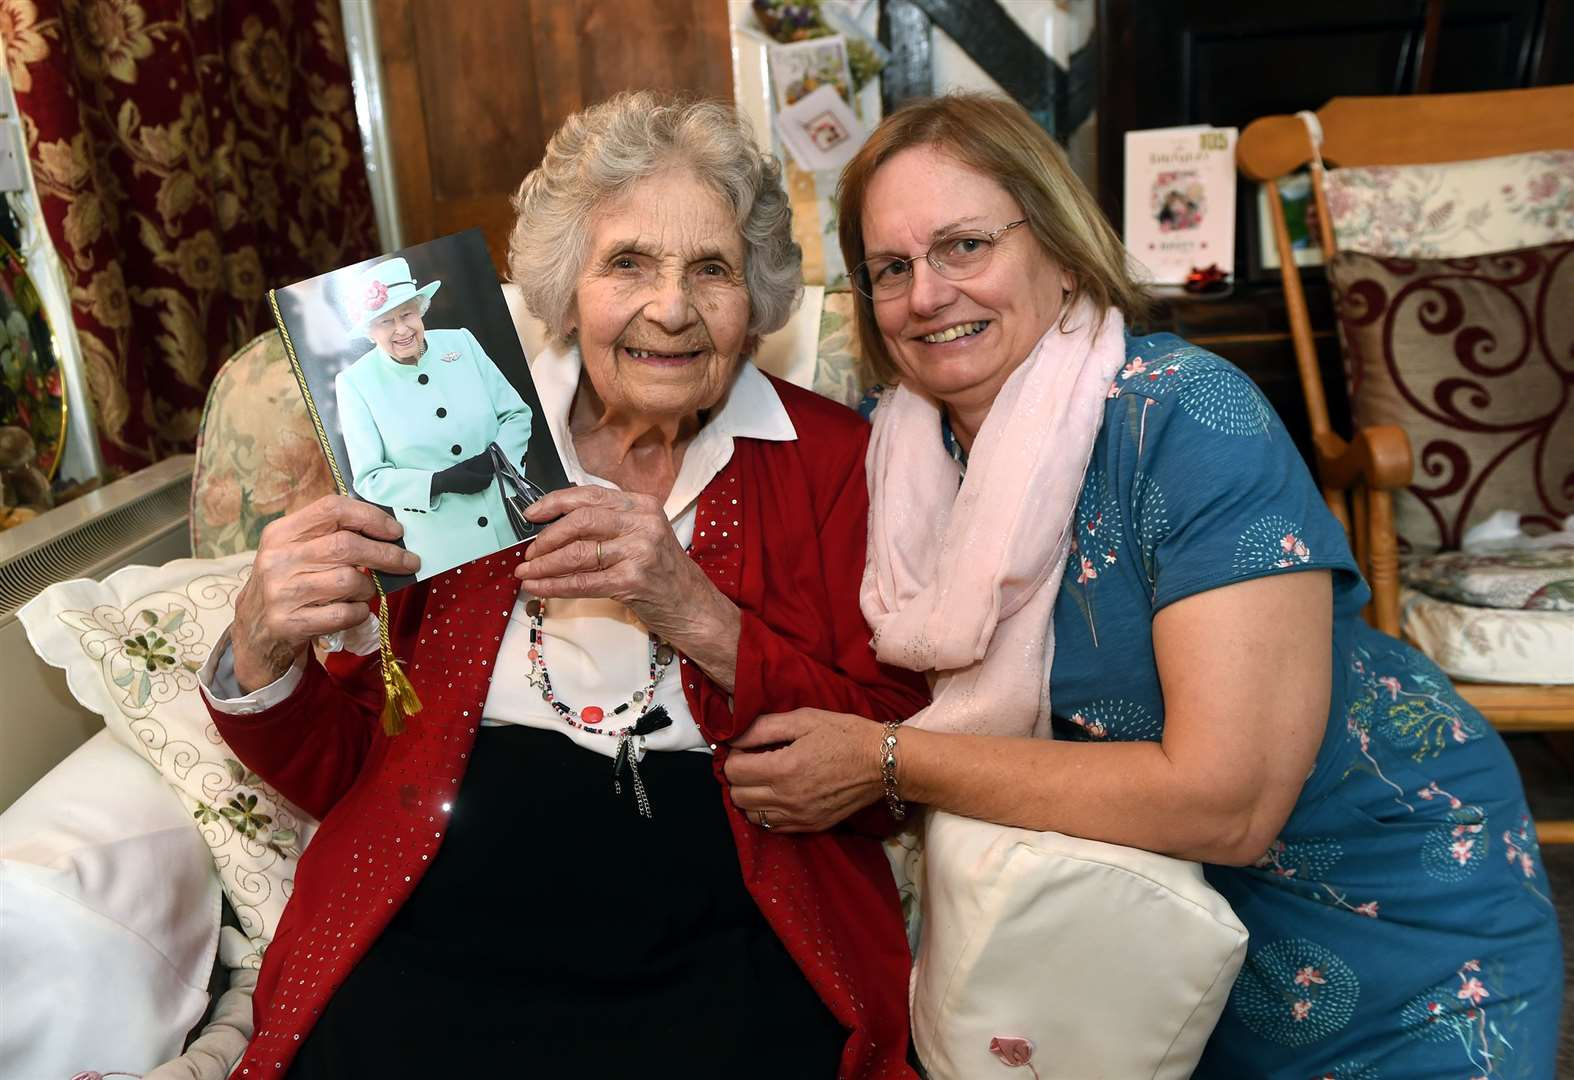 Nora, 105, reveals secret to long and happy life